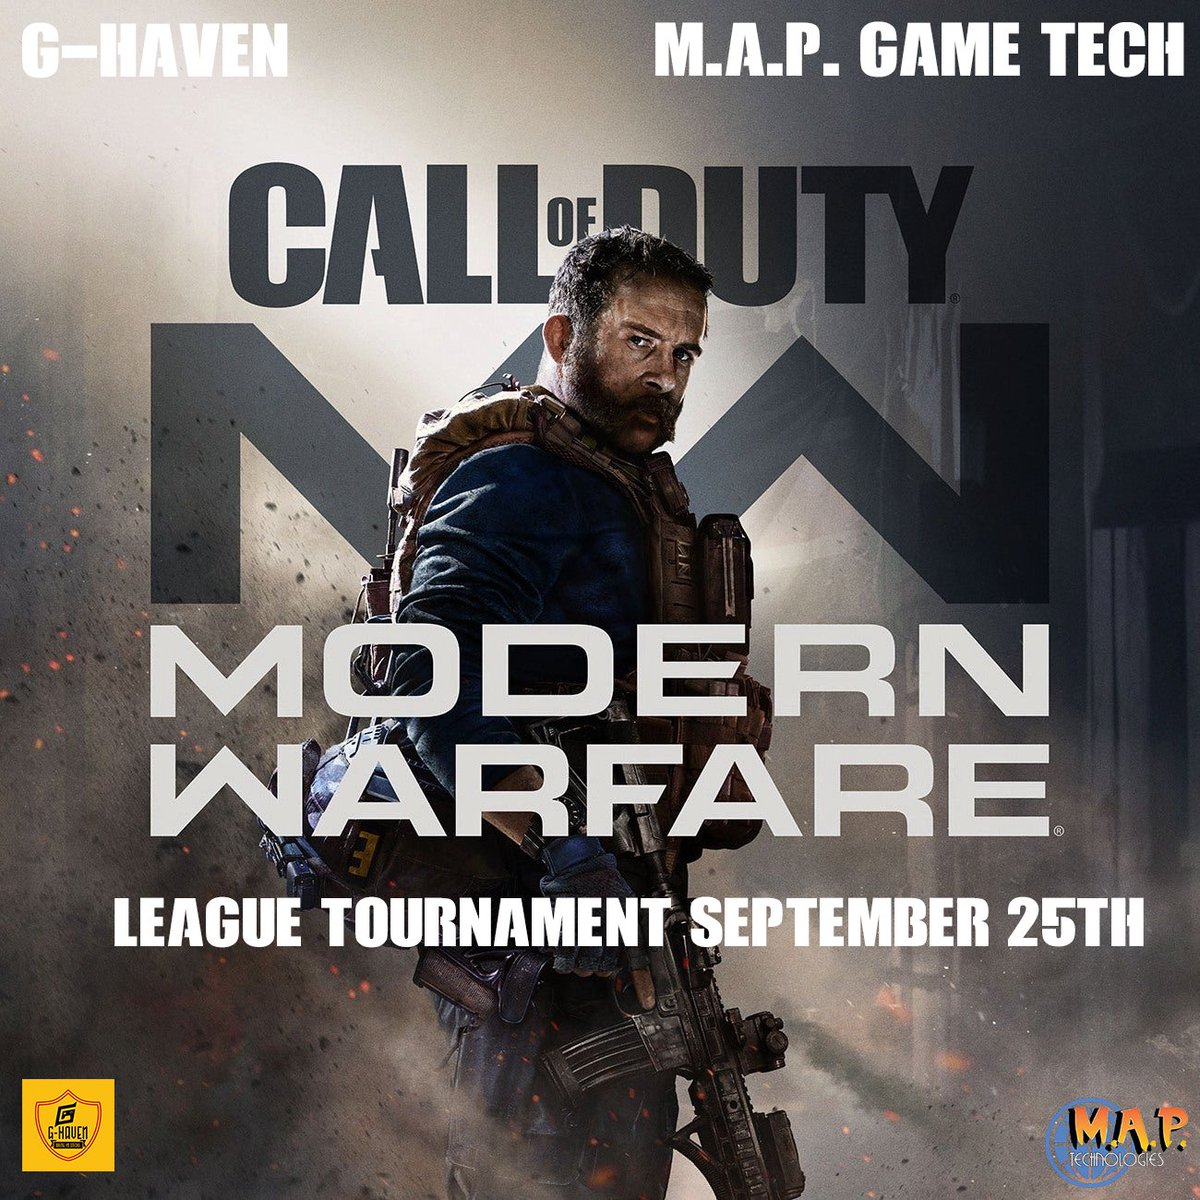 You think you can take on our pro team in COD Warzone?! Come at us and Bring Yo Sticks!!! DM us to challenge the team #BringYoSticks #gaming #GhavenEsports #gamer #twitchstreamer #xbox #Monster #Activision #RedBull #ElectronicArts #Gamestop #Honda #cod #CoD2020 #CoDMW https://t.co/JJHyET12m9